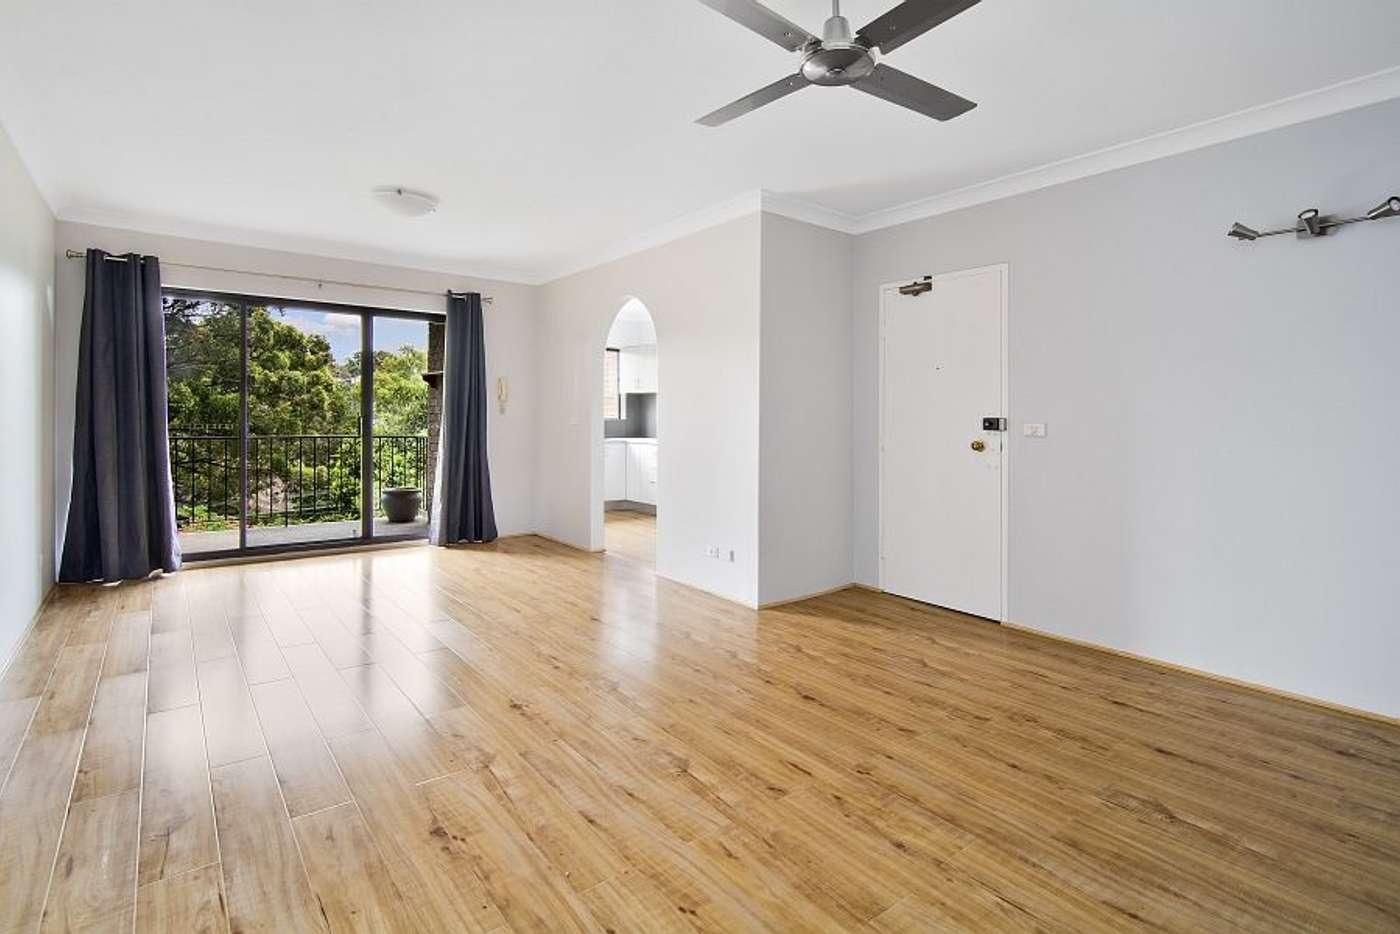 Main view of Homely apartment listing, 1/461 Willoughby Road, Willoughby NSW 2068